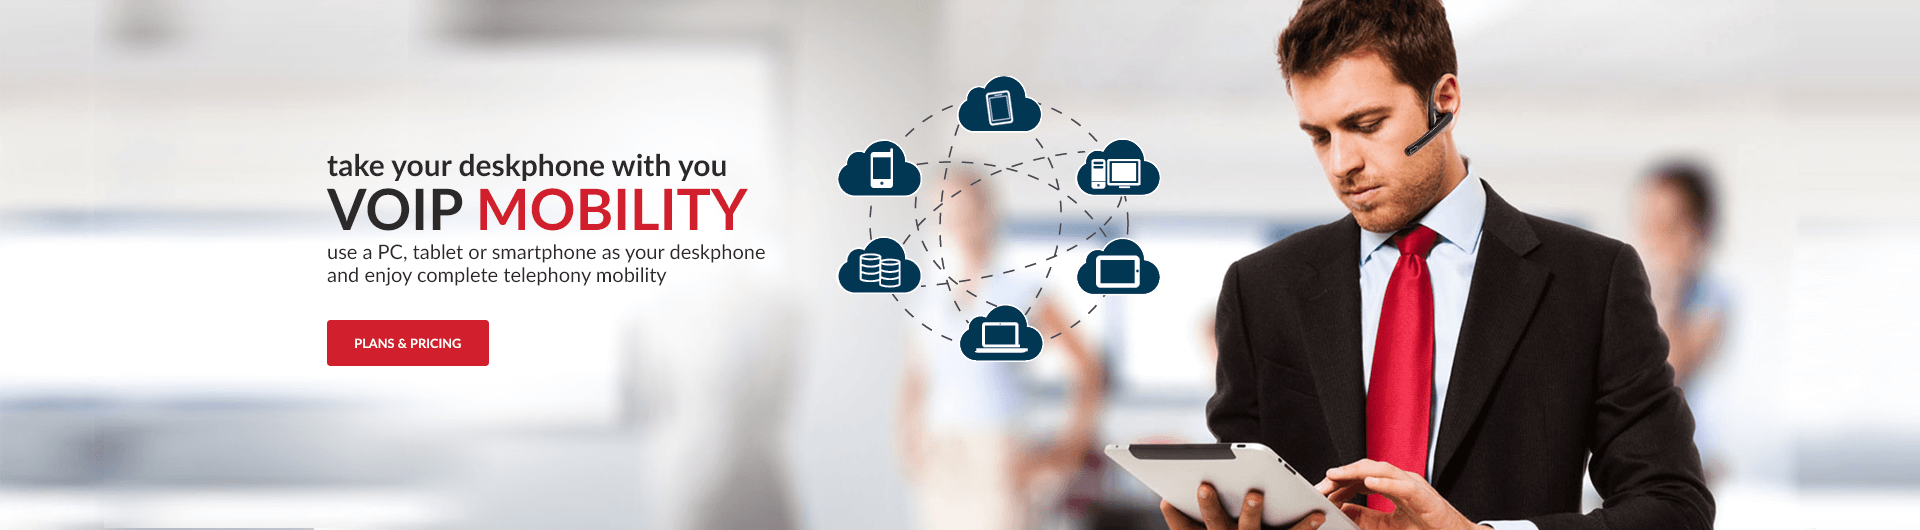 With our hosted VOIP plans you can use your PC, tablet or smartphone as your desk phone to enjoy complete telephony mobility with our softphone app